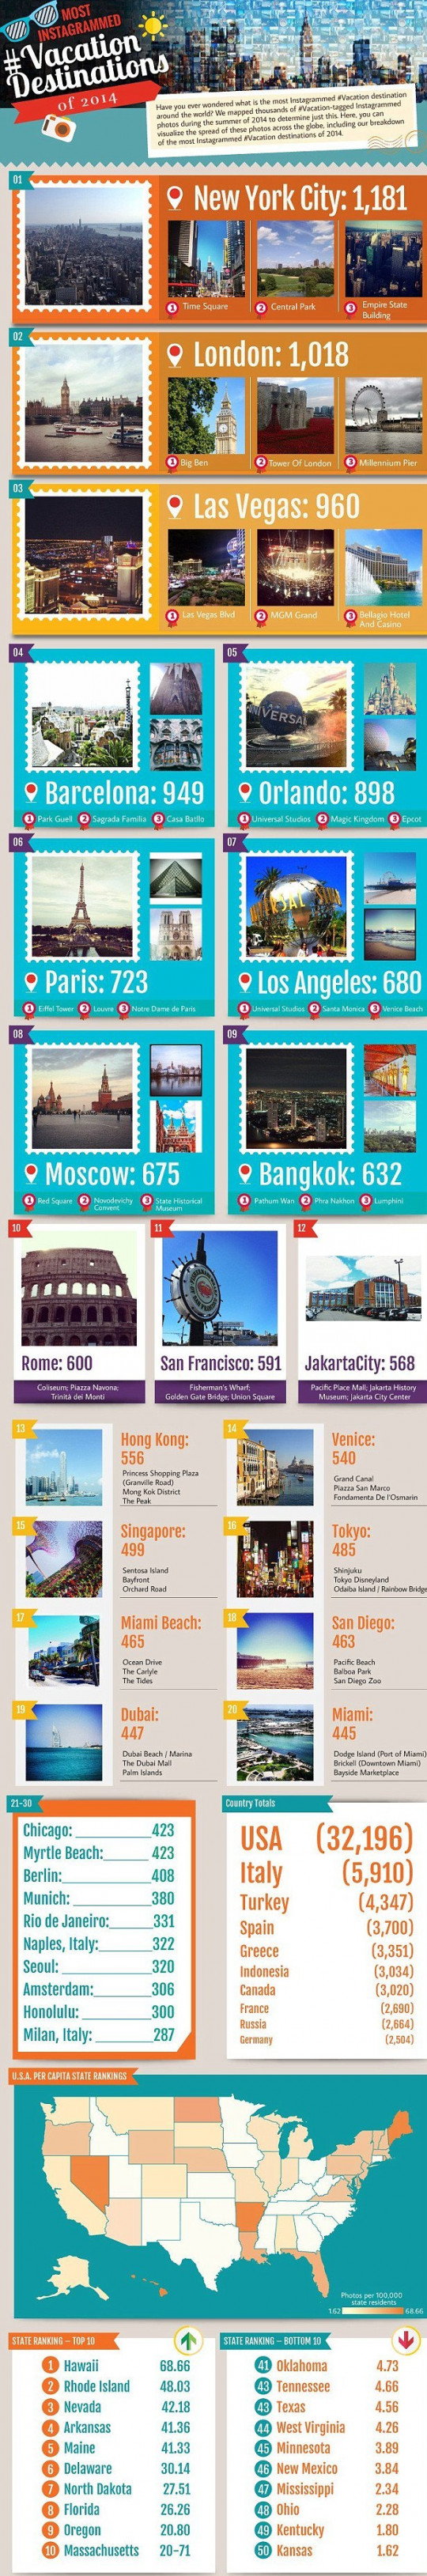 Most Instagrammed Vacation Destinations of 2014